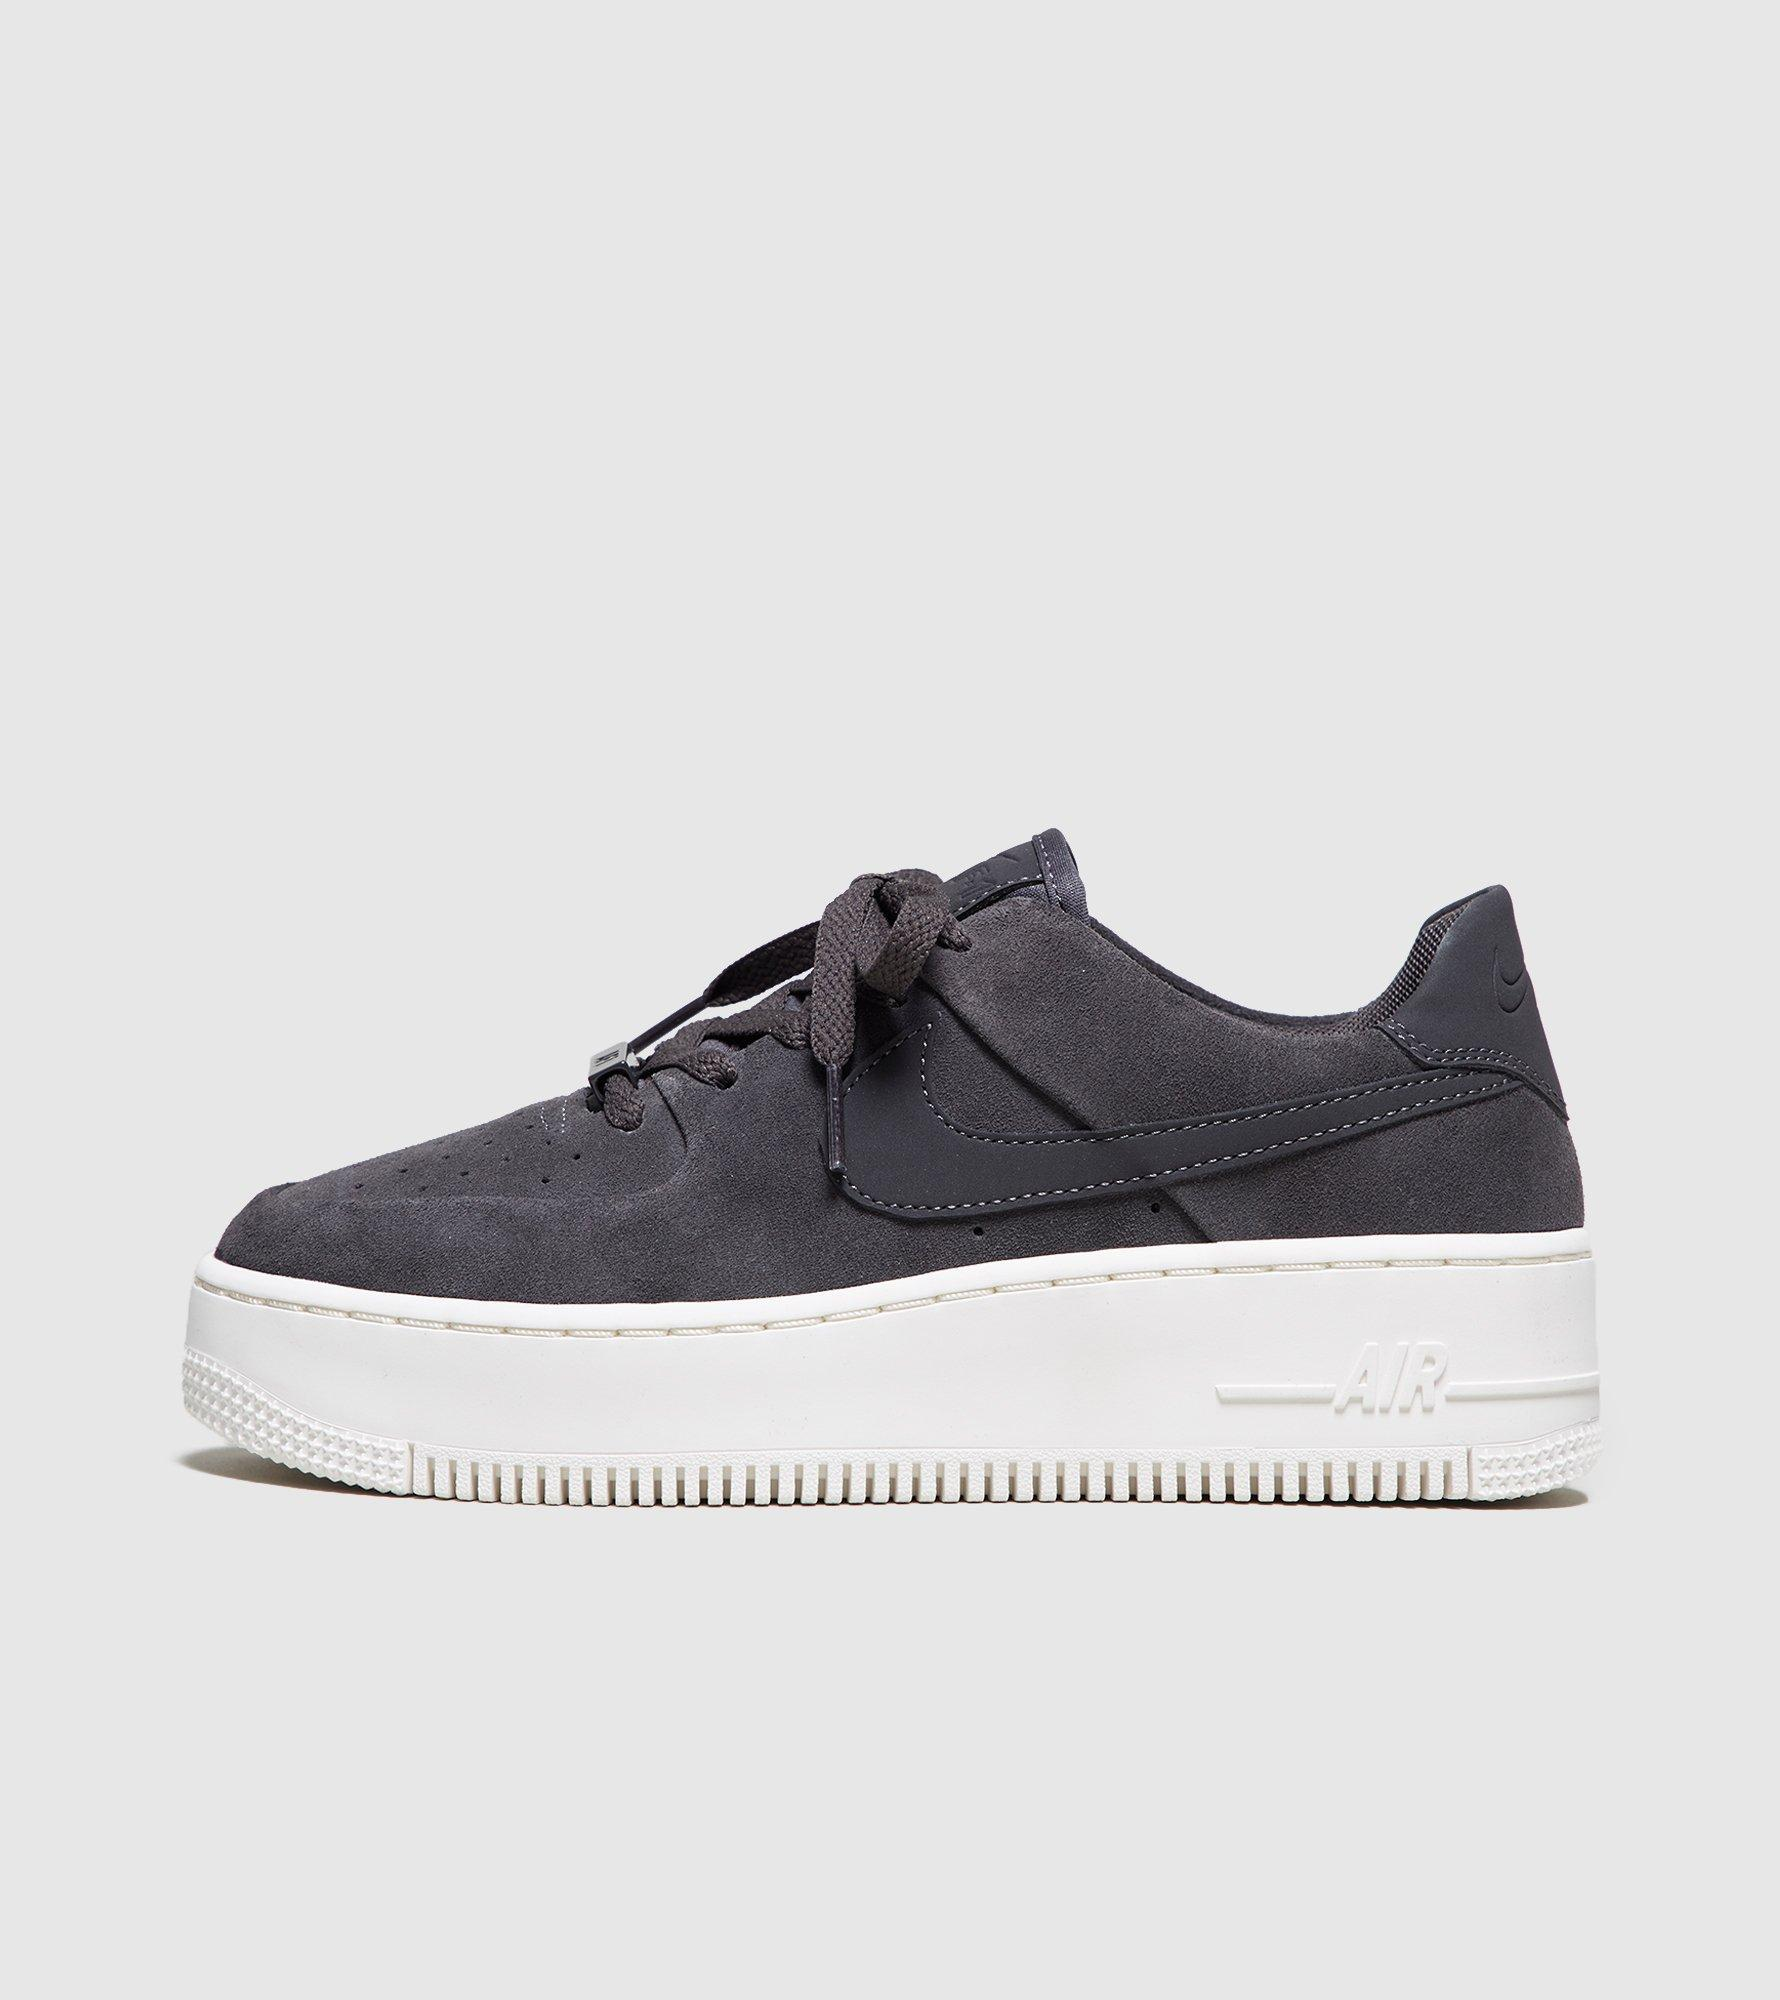 0ceb3f5362d8 Nike Air Force 1 Sage Low Women s in Gray - Lyst